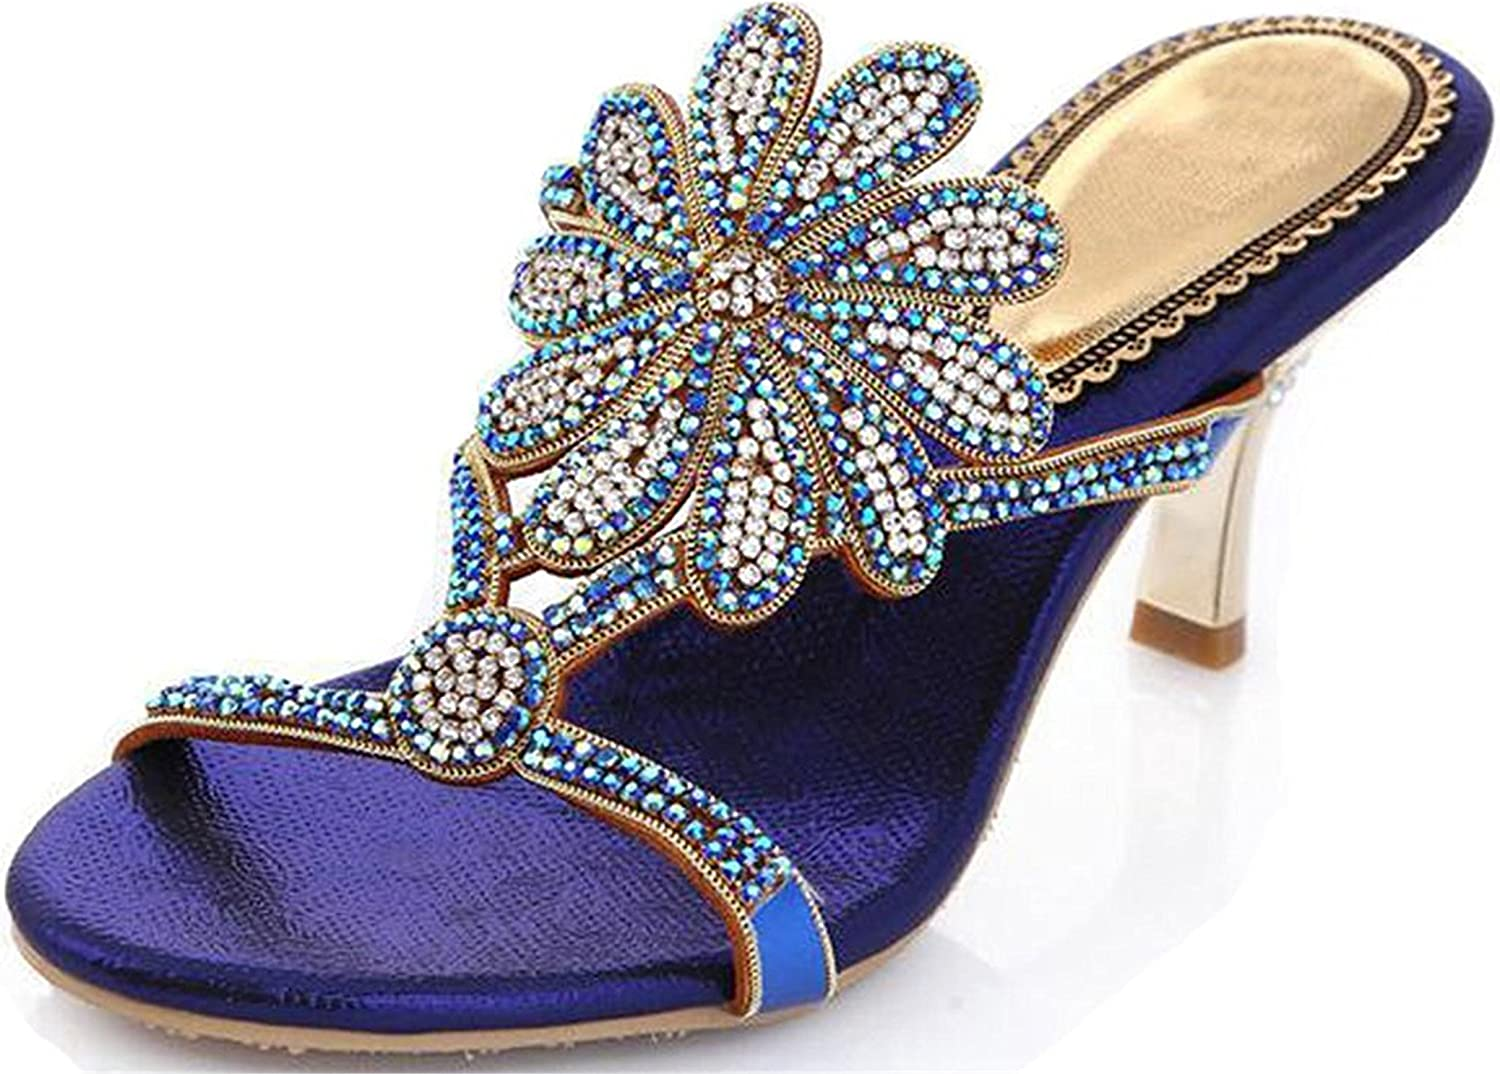 Garyline Stunning Sun Flowers Heeled Sandal Peep Toe Slid Evening Sandal Dress Pump